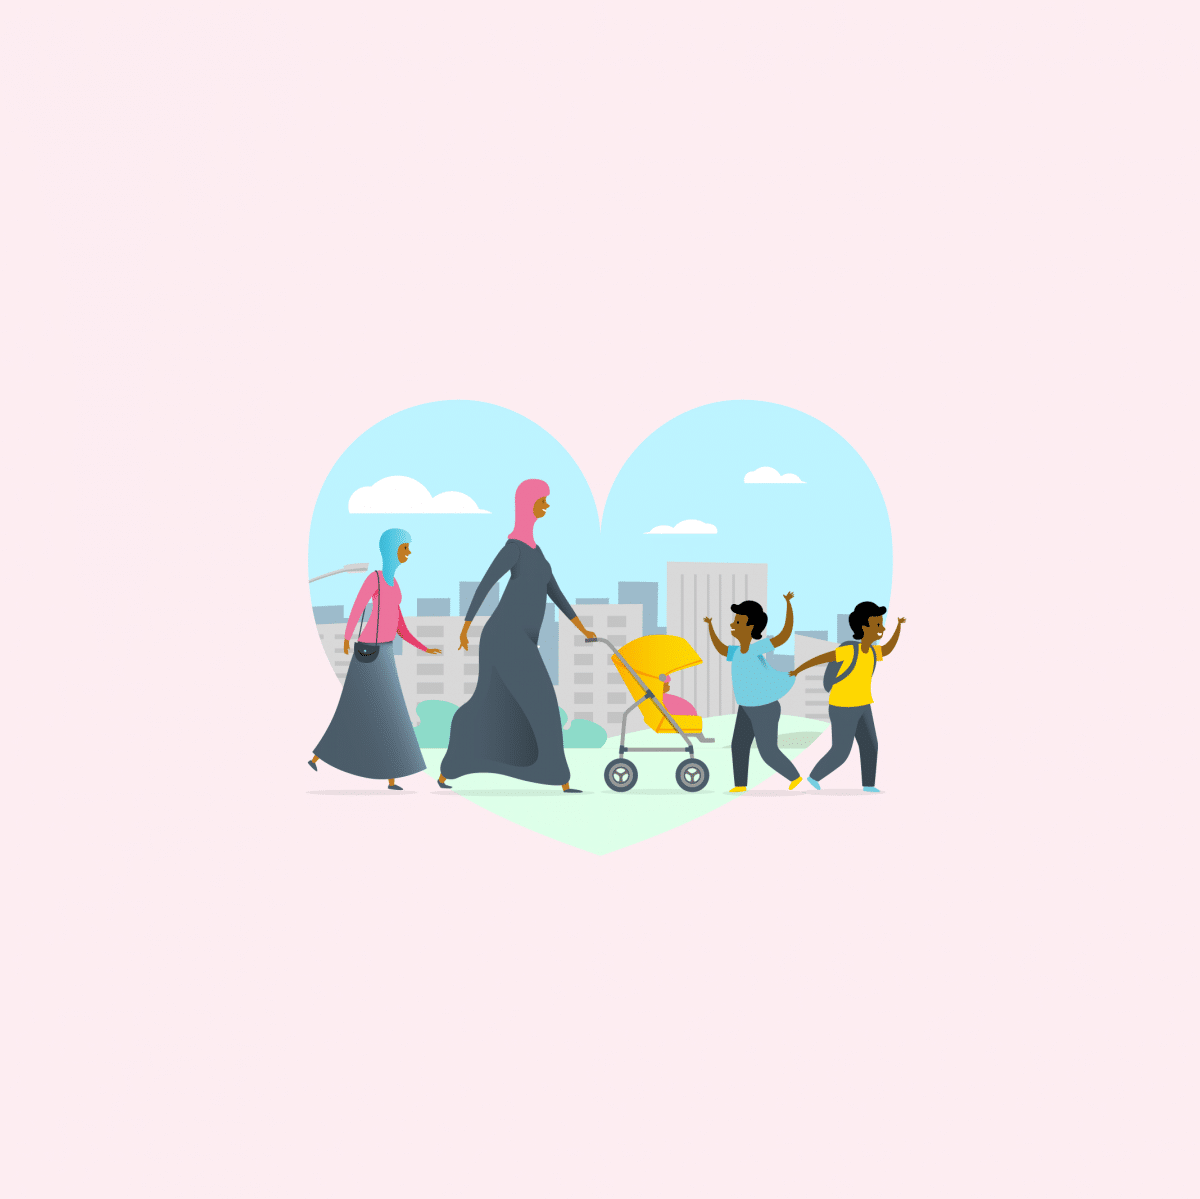 Two women walking behind two young boys. One of the women is pushing a baby chair with a baby.